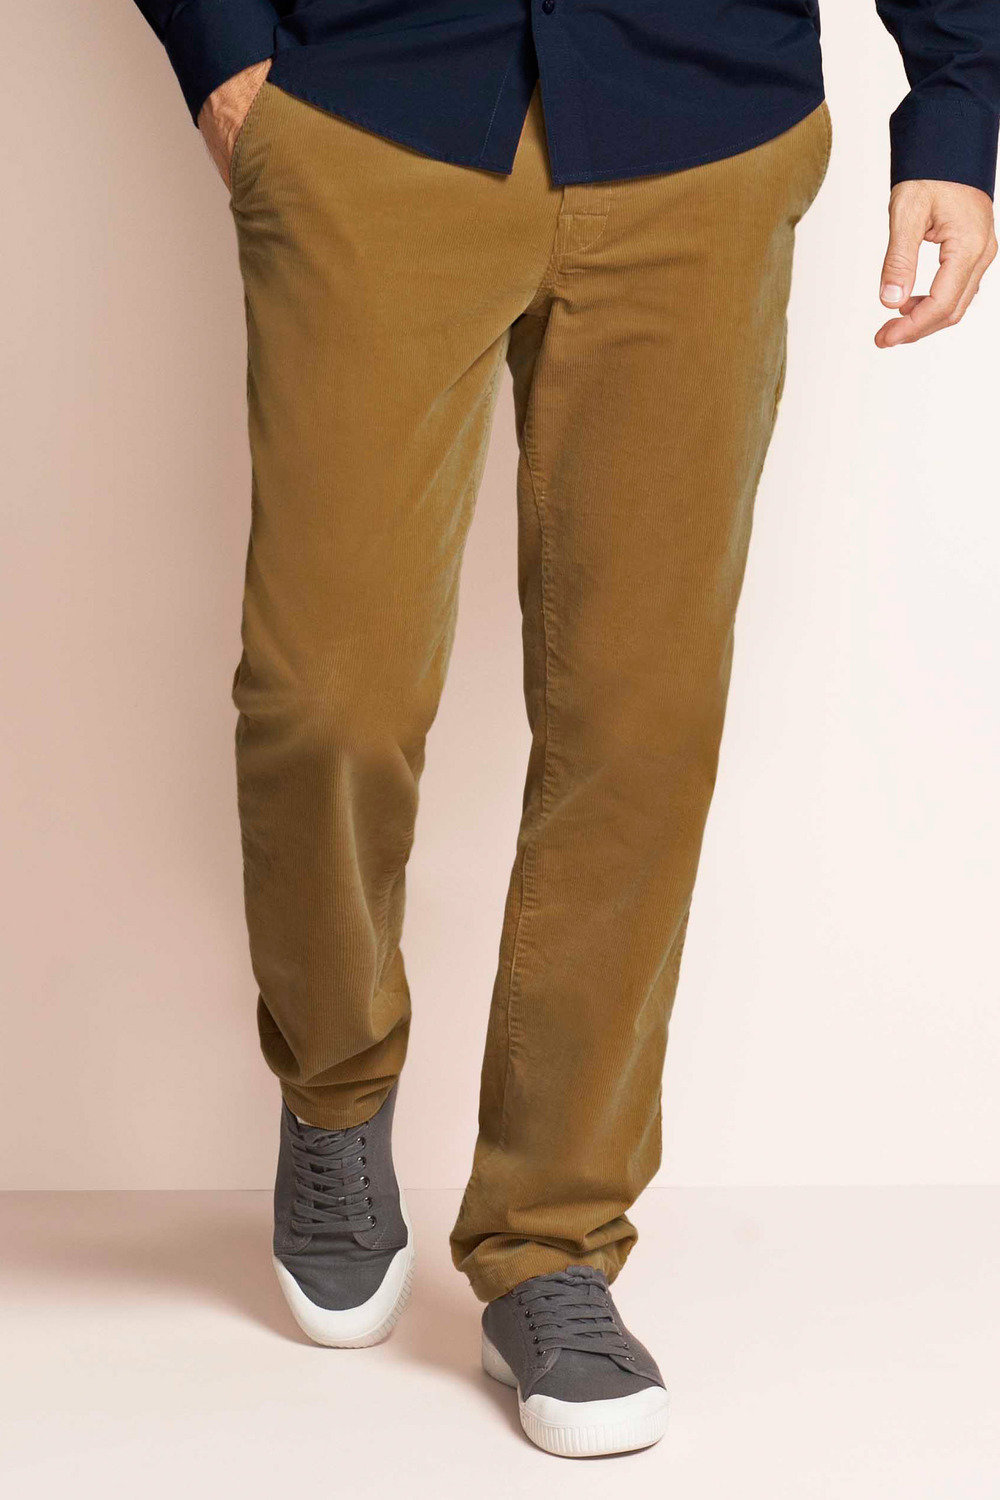 Mens Fashion Clothing Online In New Zealand Ezibuy Tendencies Navy Chinos Short 28 Quick View